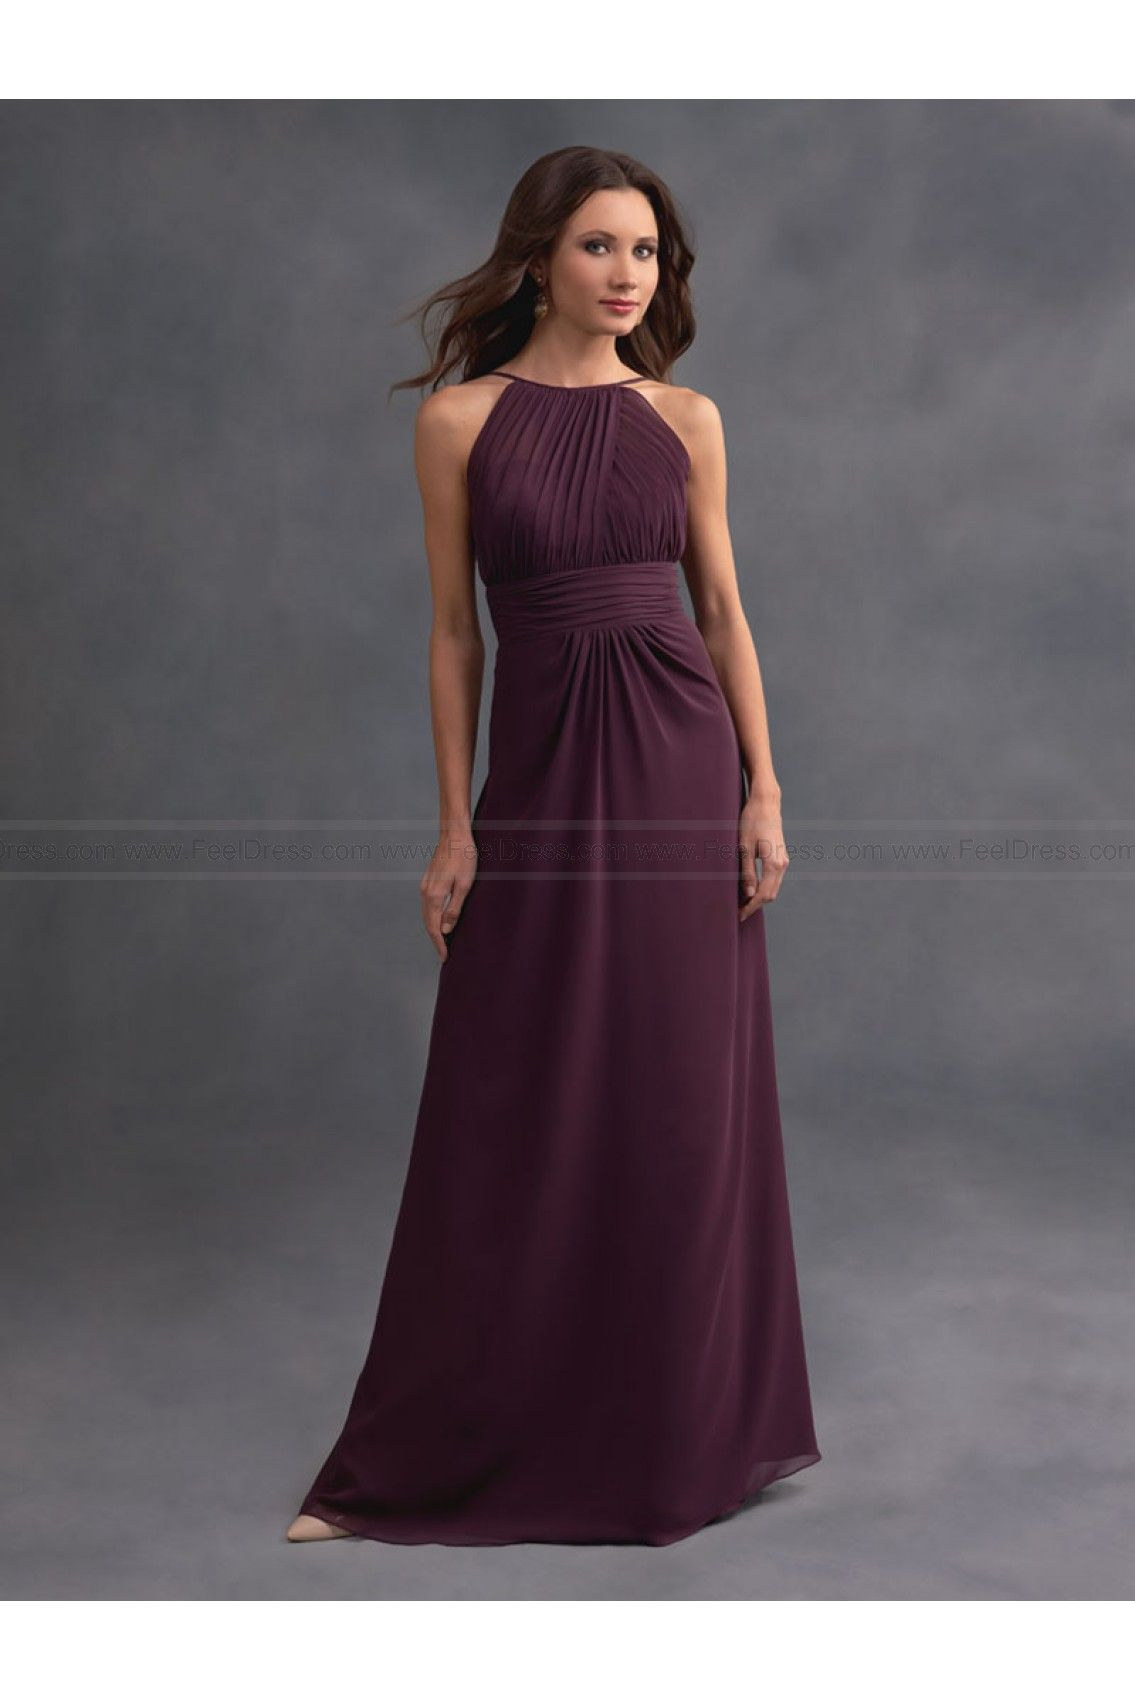 Alfred angelo bridesmaid dress style 7401l new alfred angelo alfred angelo bridesmaid dress style 7401l new ombrellifo Image collections